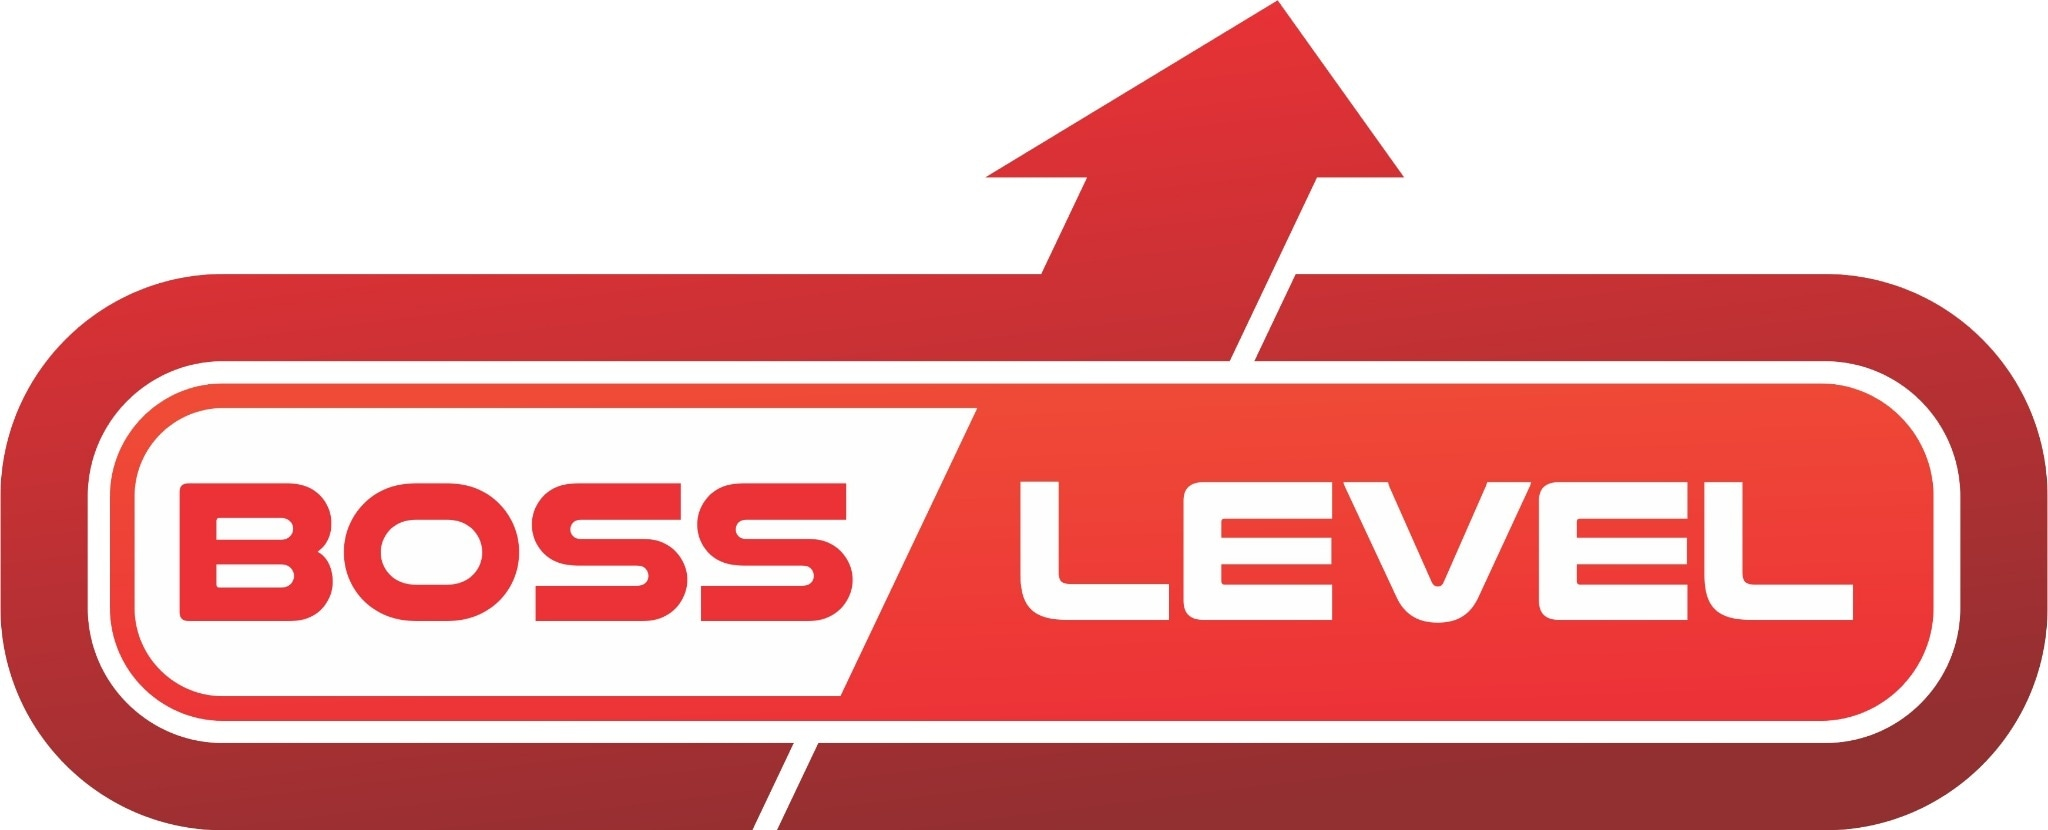 Boss Level Labs promo code